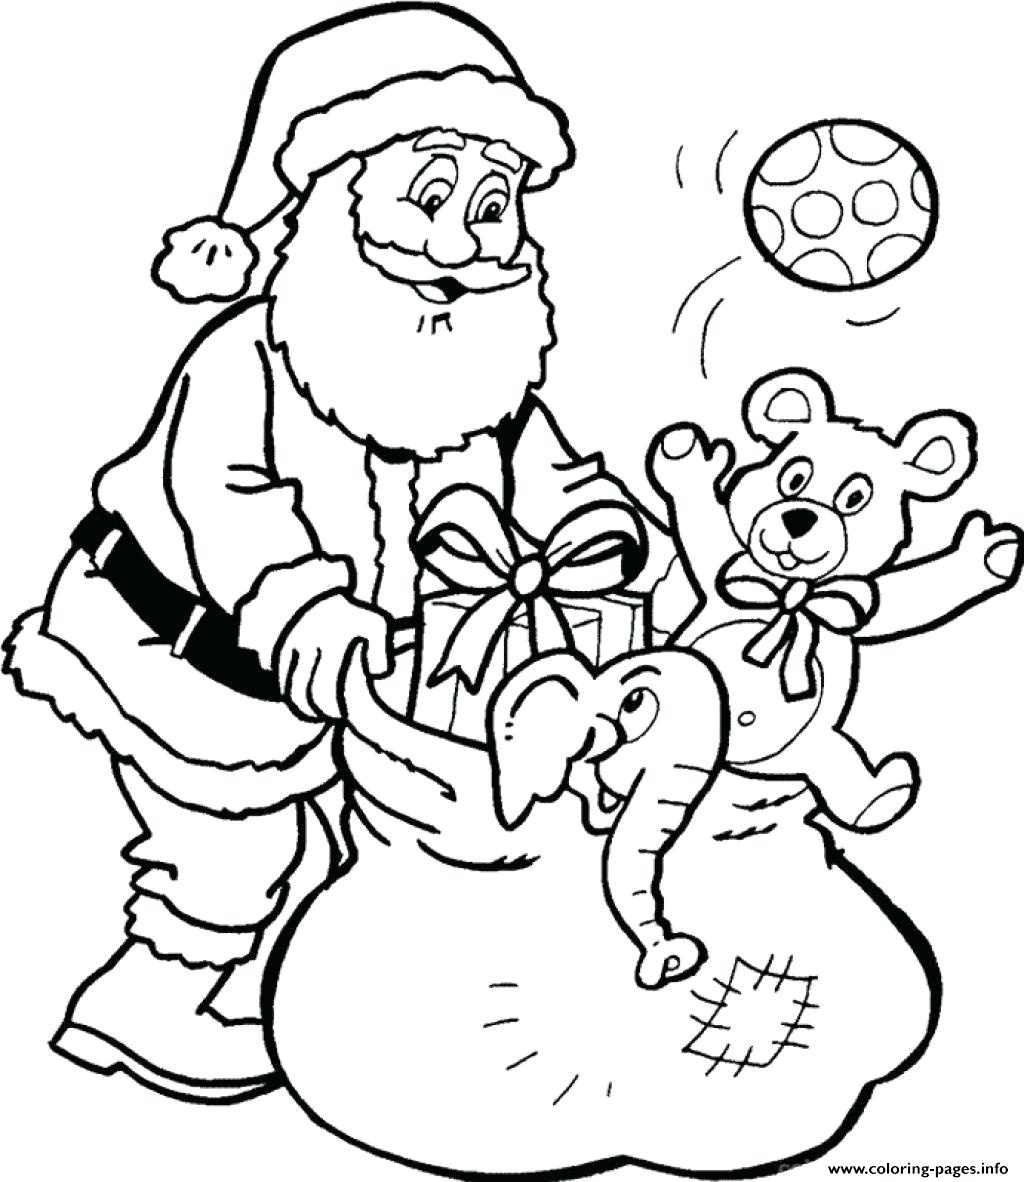 1024x1182 Lovely Winter Holidays Santa Claus Coloring Pages Womanmate Free